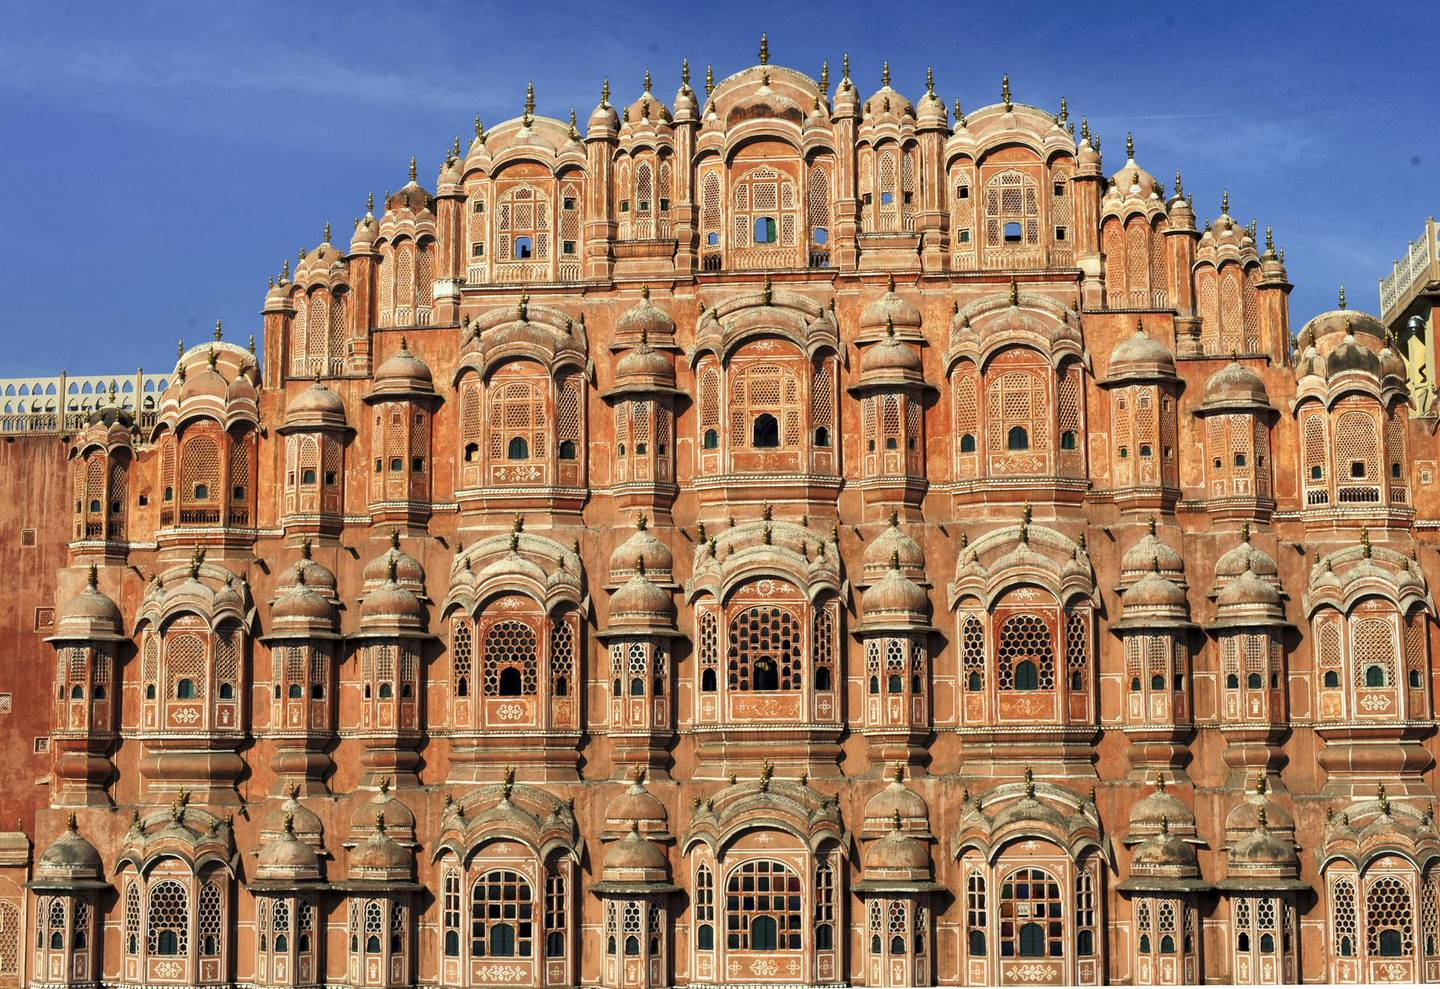 """The facade of the Hawa Mahal or """"Palace of Winds"""" in the old walled city of Jaipur on November 14, 2011.  The iconic building was designed to allow veiled ladies of the time to see the street scenes below without being seen. The baroque style building was built in 1799 by the Rajasthany royalty.  Jaipur is know as the """"Pink City"""" because its prominent buildings are washed in hue of pink.           AFP PHOTO/Roberto Schmidt (Photo by ROBERTO SCHMIDT / AFP)"""